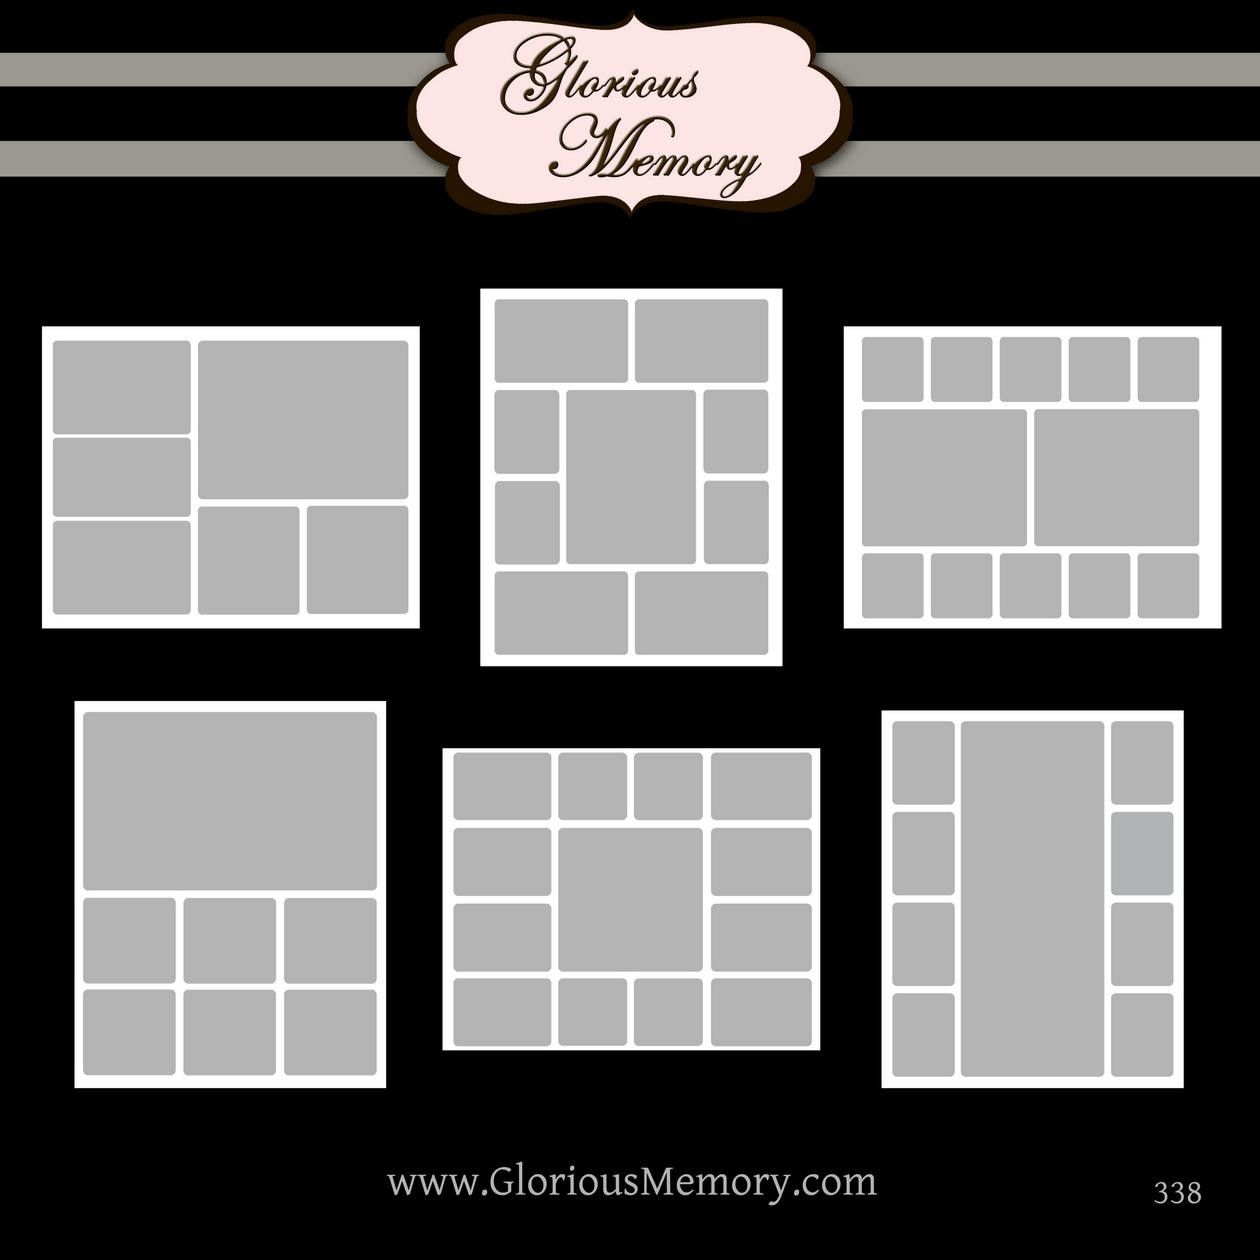 storyboard collage blog board photoshop psd templates three 16x20 and three 20x16 rounded. Black Bedroom Furniture Sets. Home Design Ideas